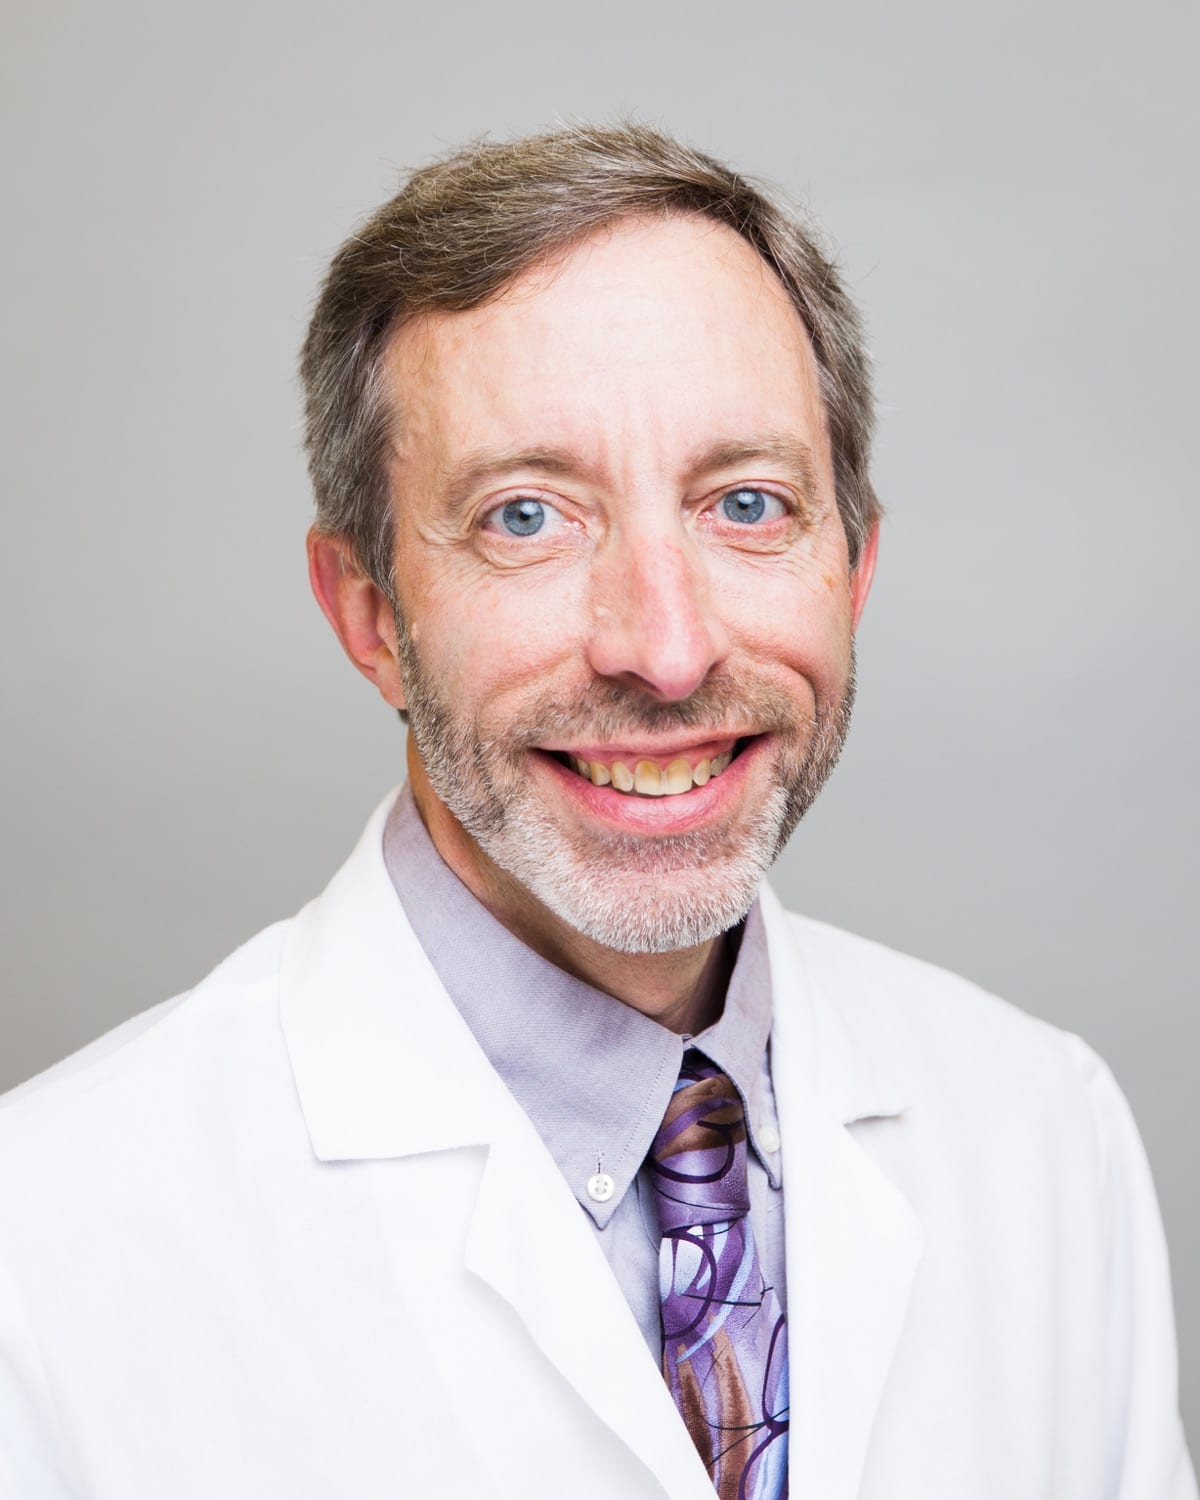 Dr. Kenneth S Lown MD